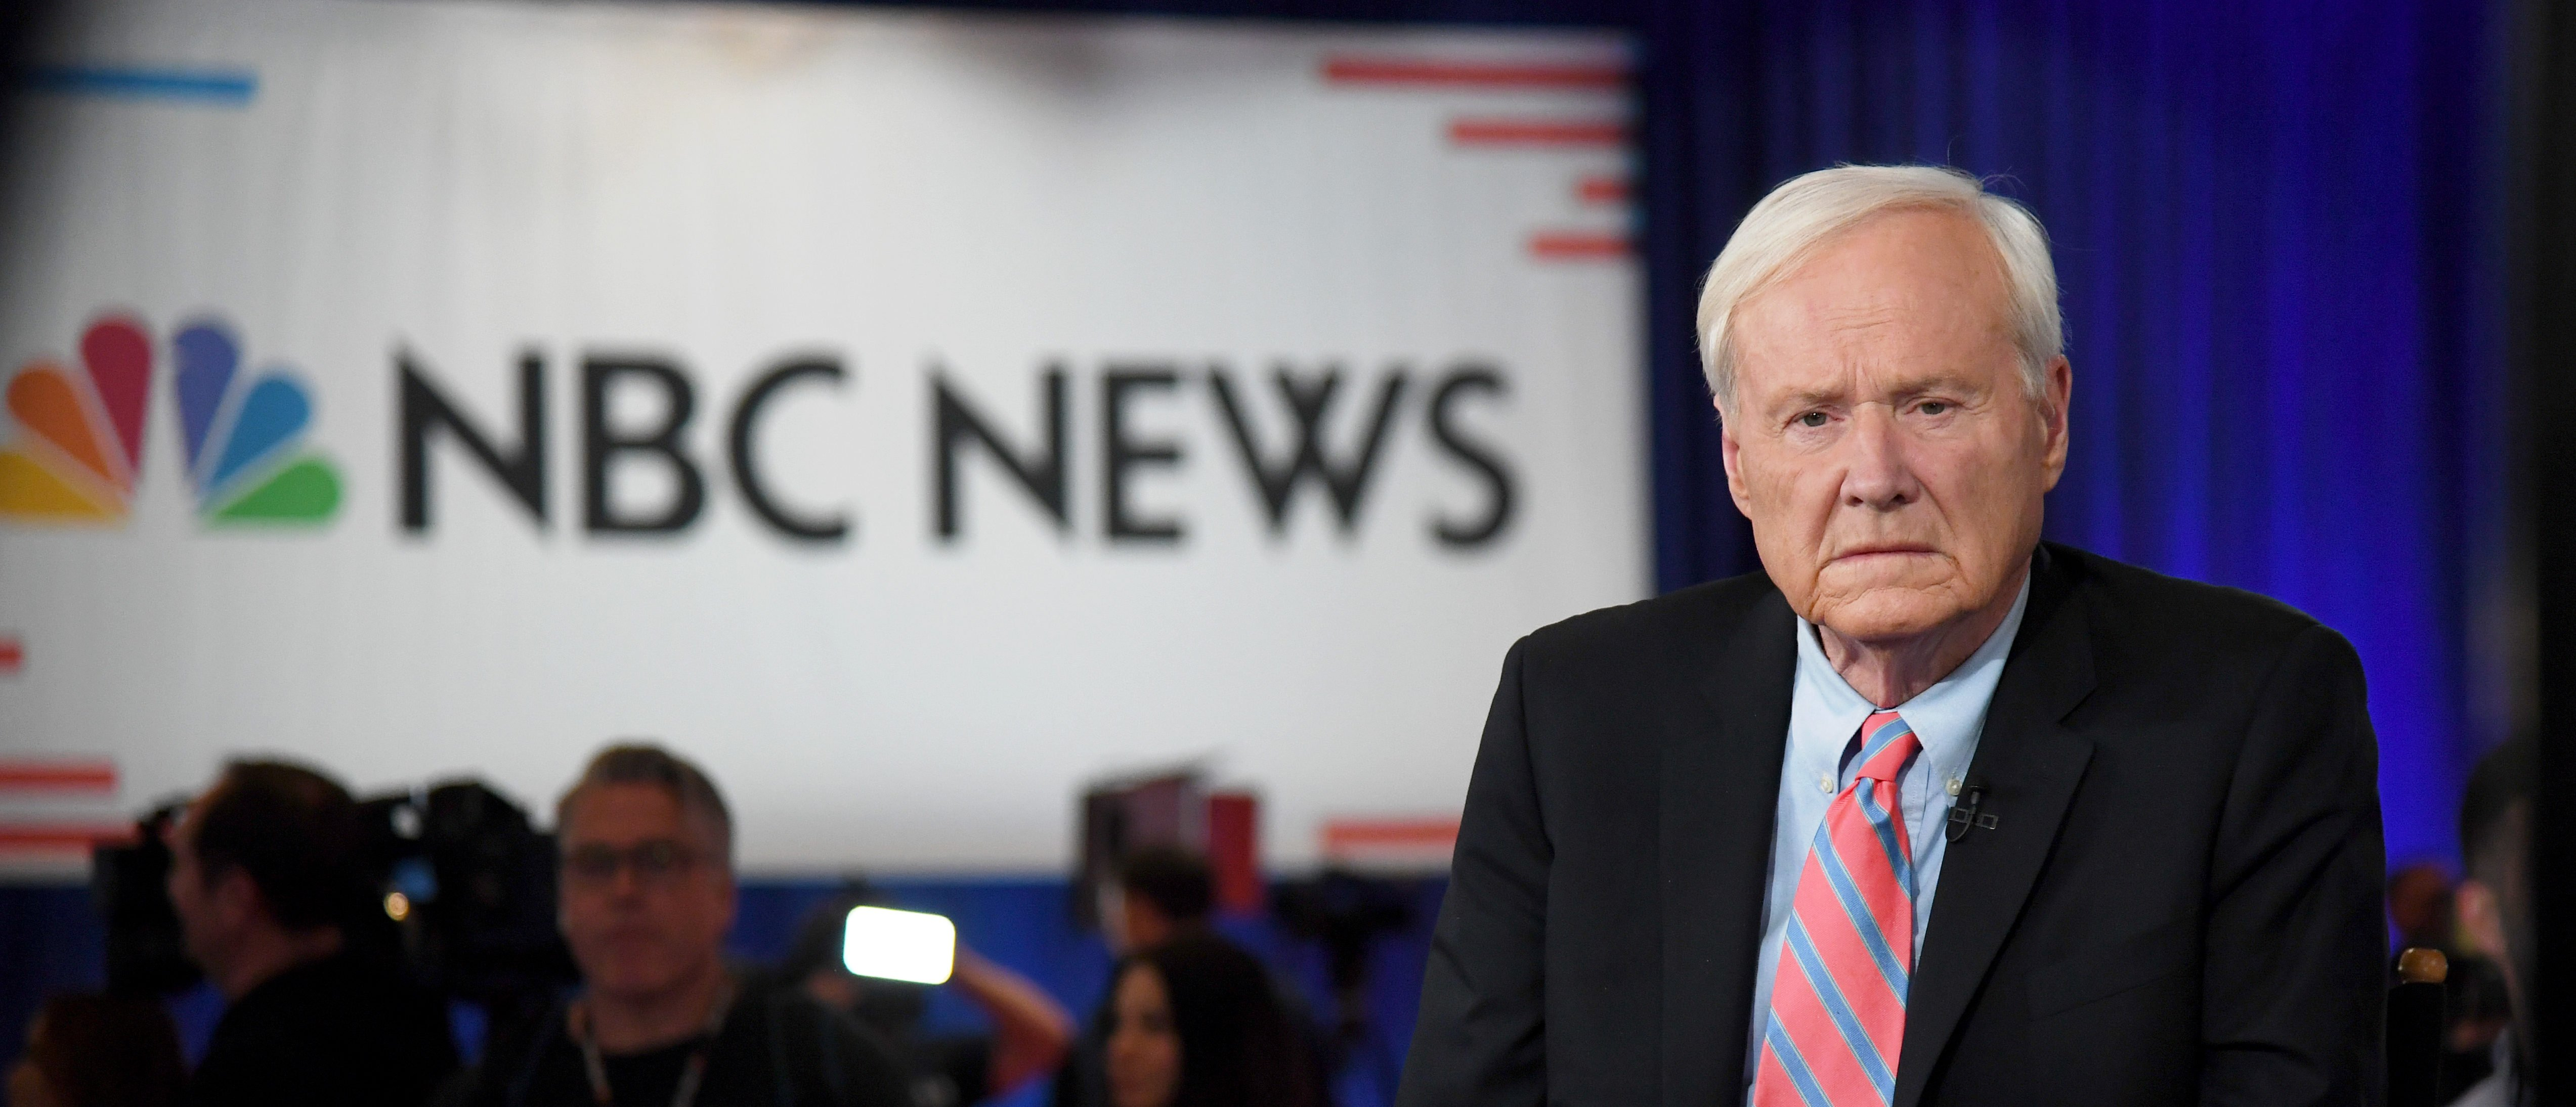 Chris Matthews Notably Absent From MSNBC South Carolina Primary Coverage